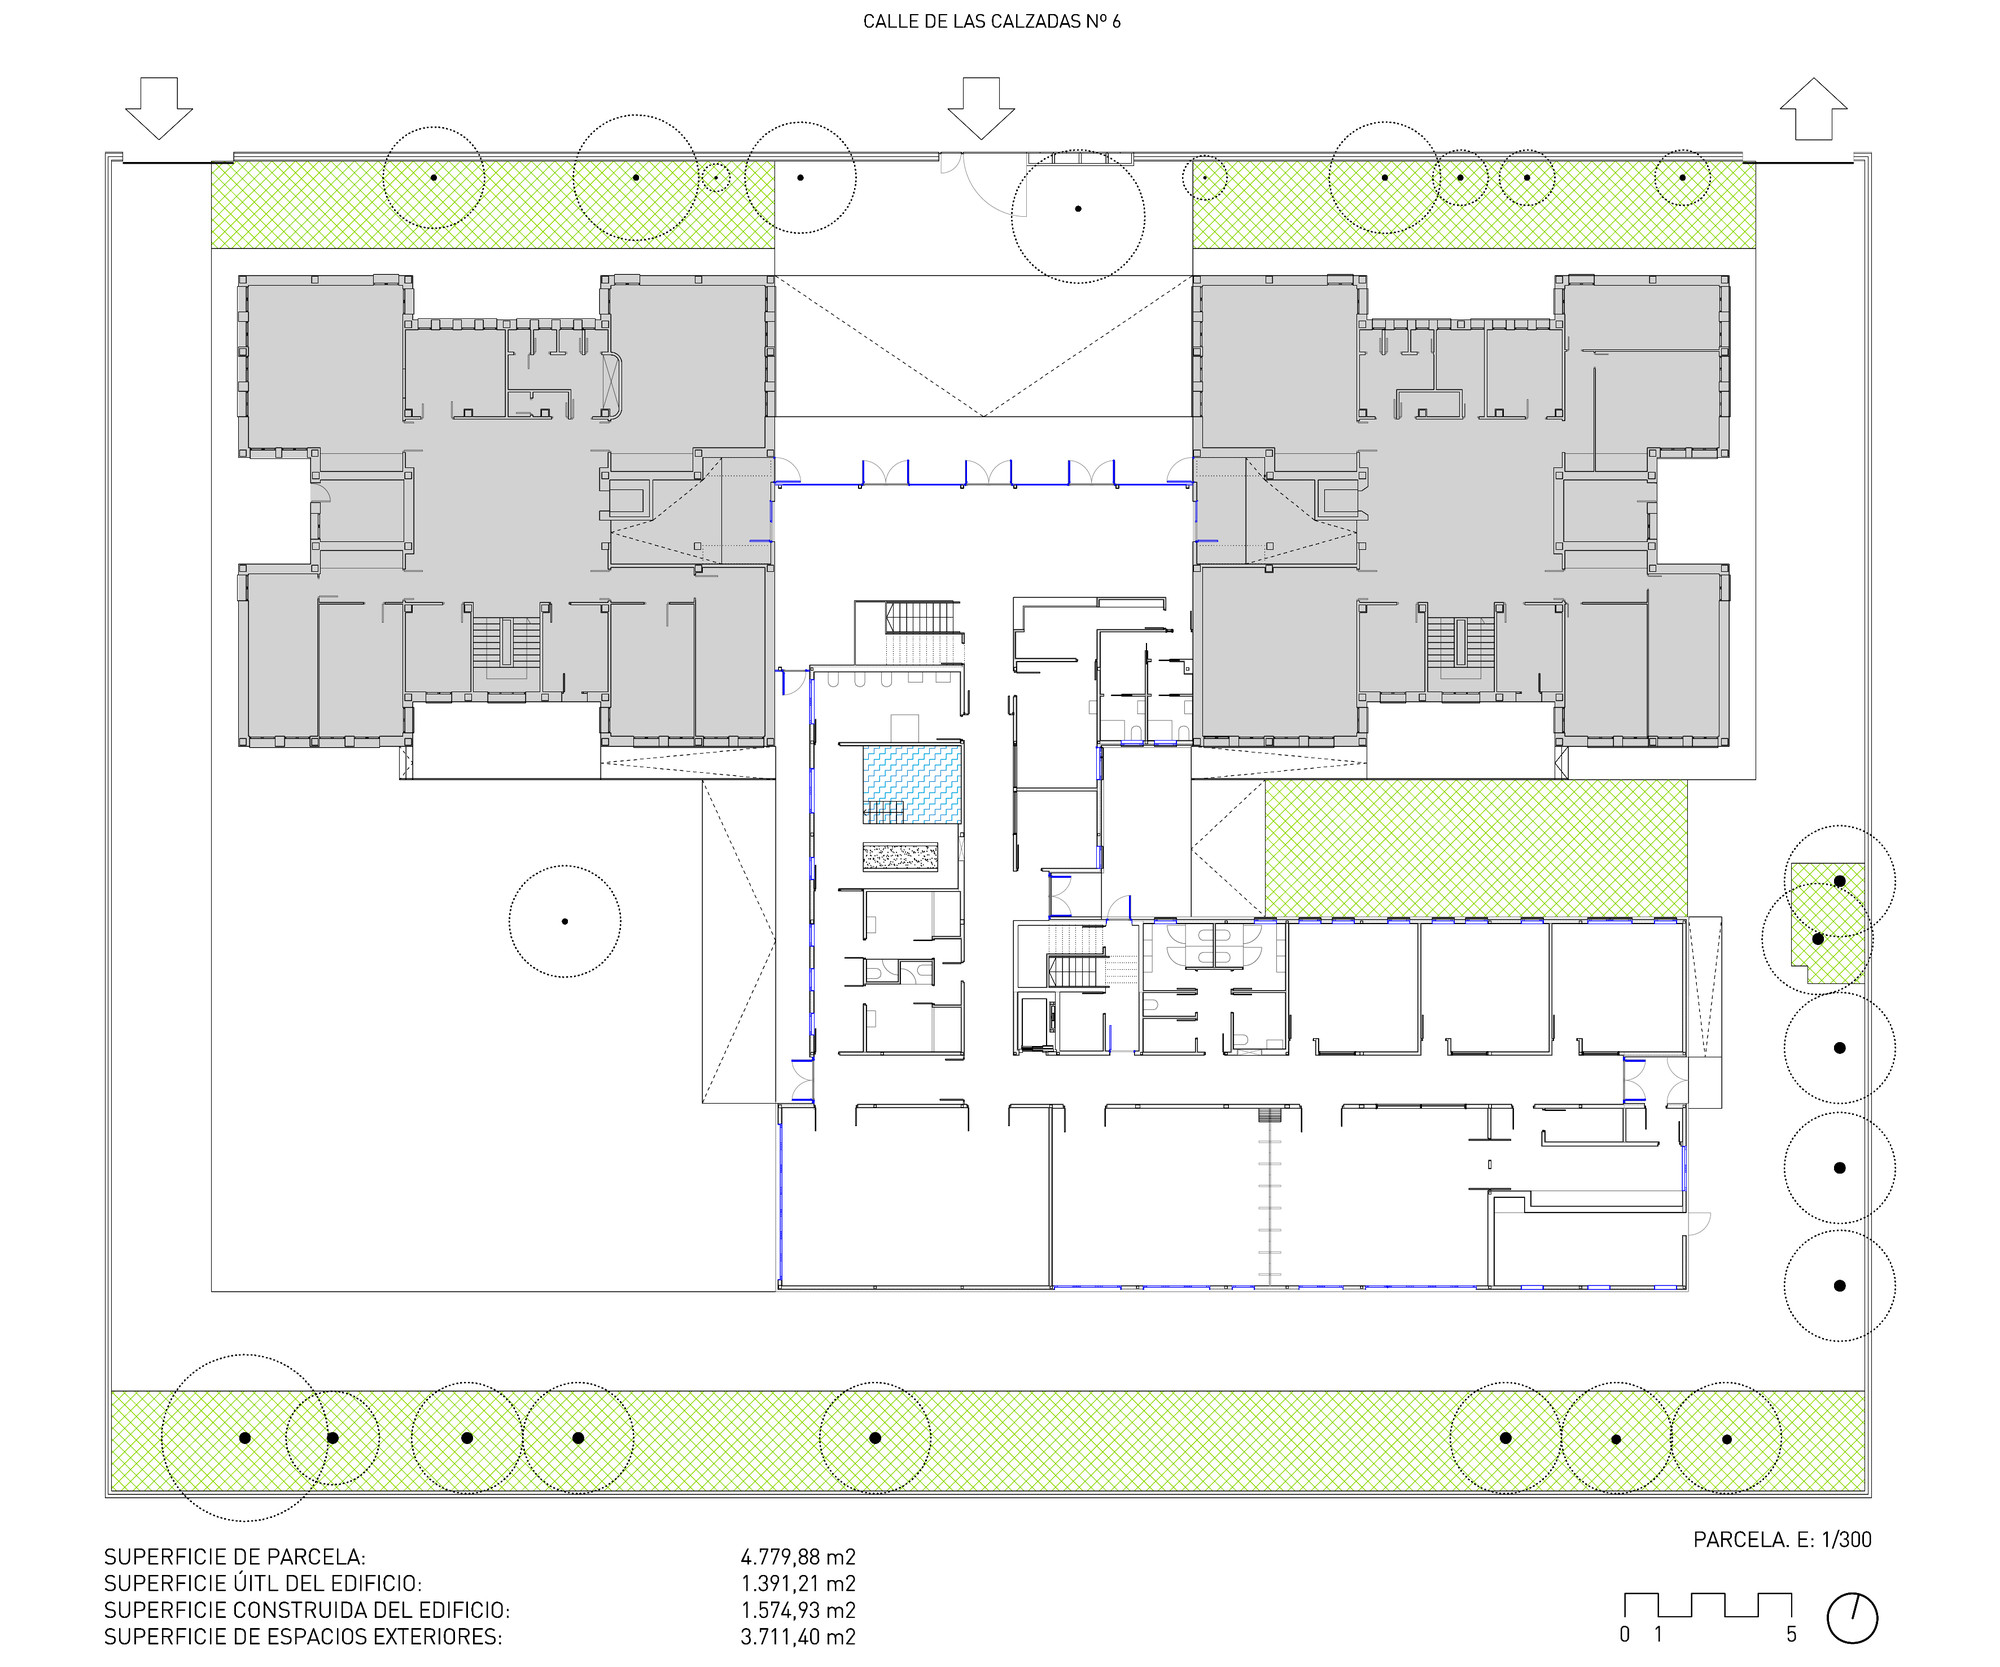 Classroom Layout Research : Gallery of extension the fray pedro ponce de leon